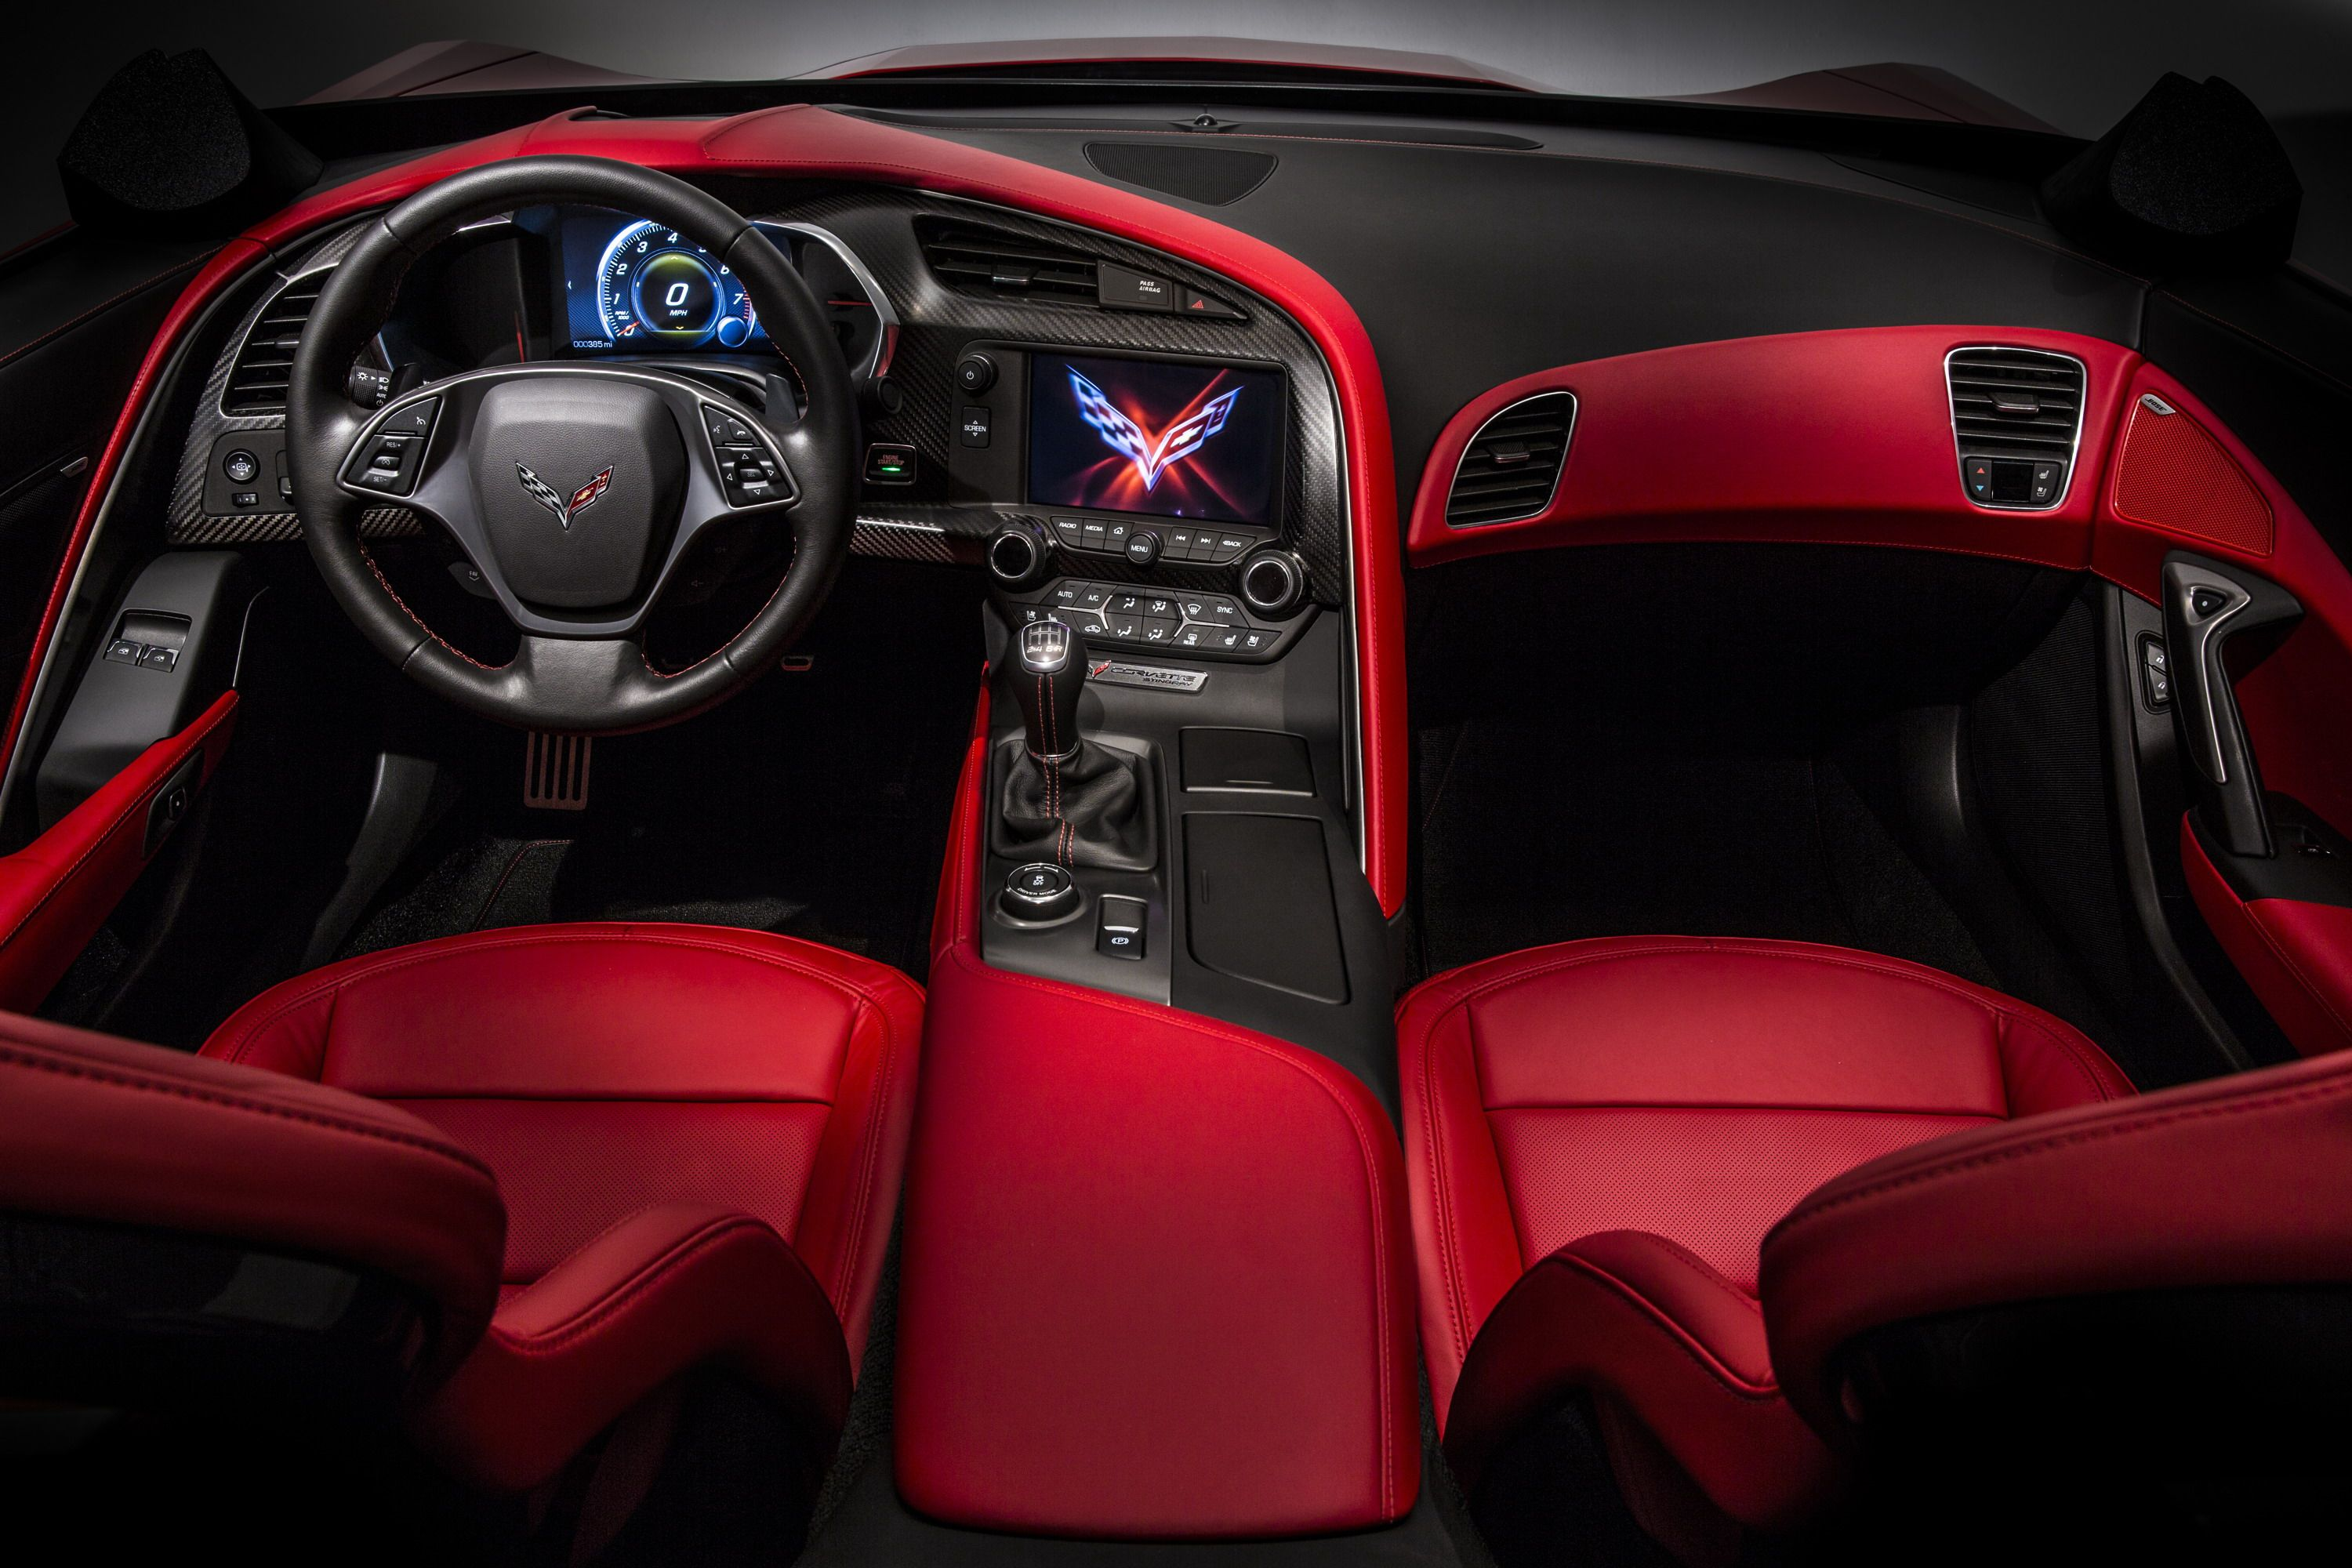 How Different Is The 2020 Chevy C8 Corvette S Interior Compared To The 2019 Chevy C7 Corvette Corvette Stingray Chevrolet Corvette Stingray Corvette C7 Stingray